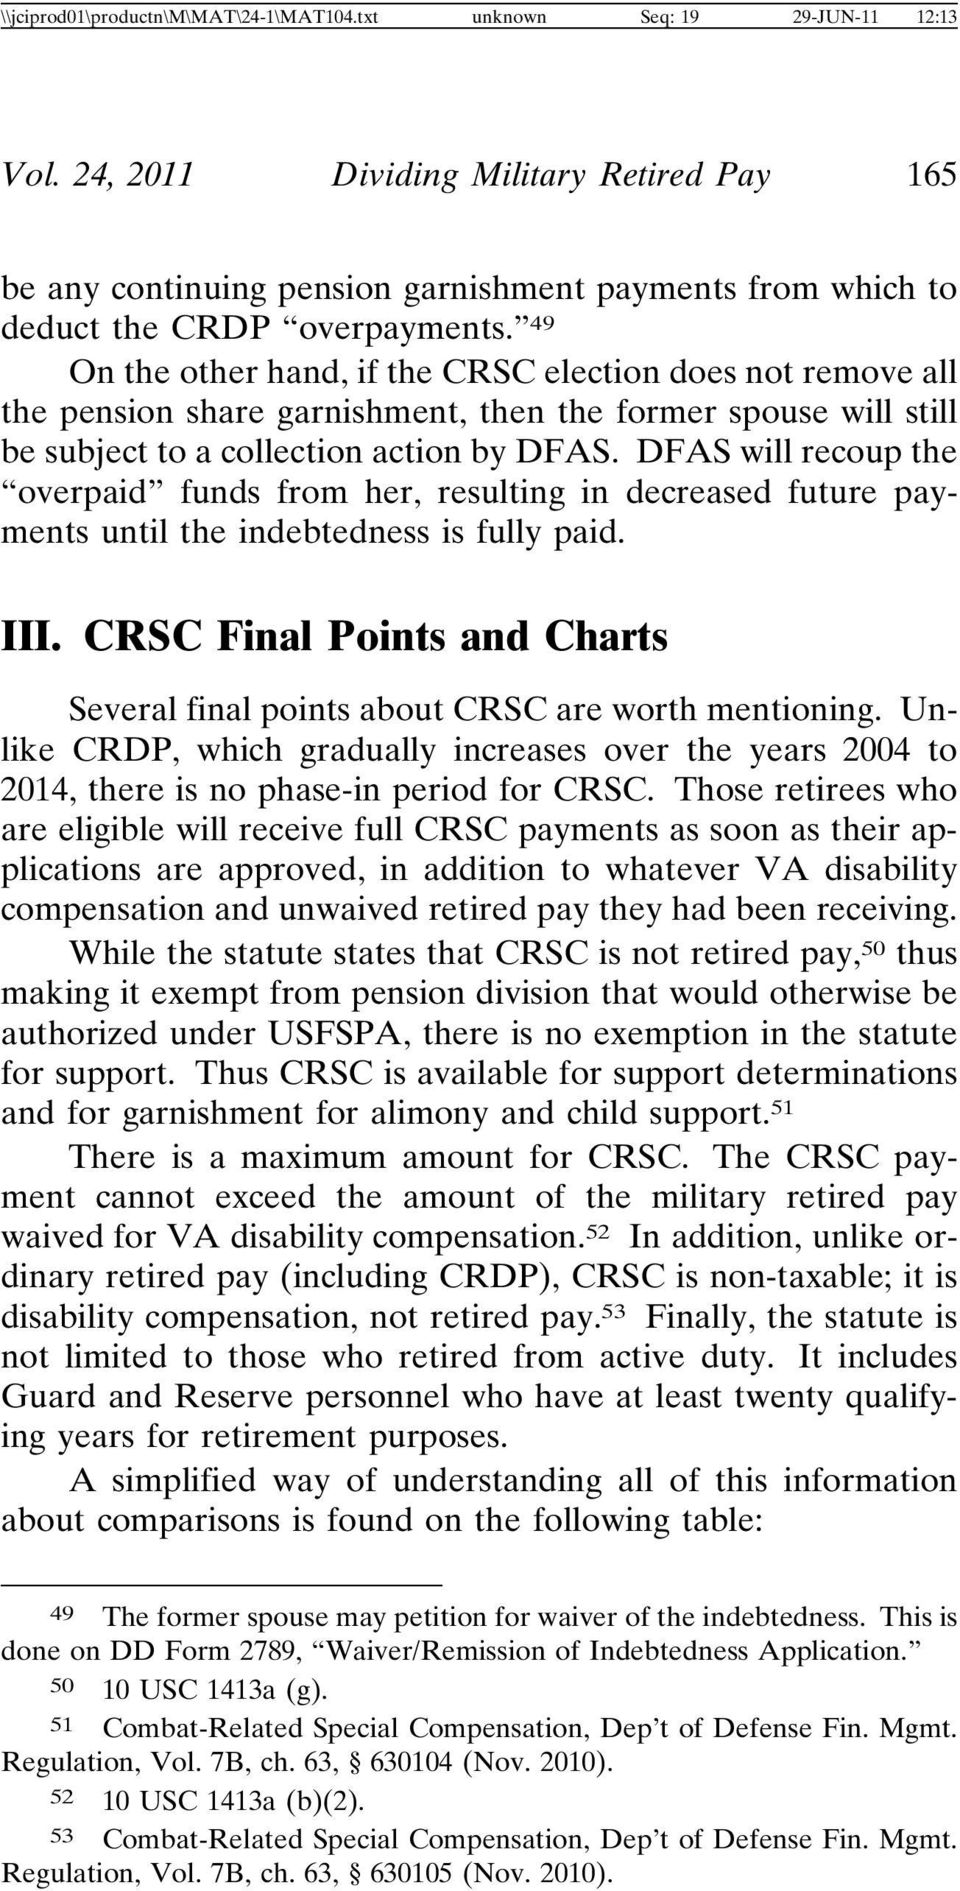 photo How is Military Retired Pay Divided During Divorce